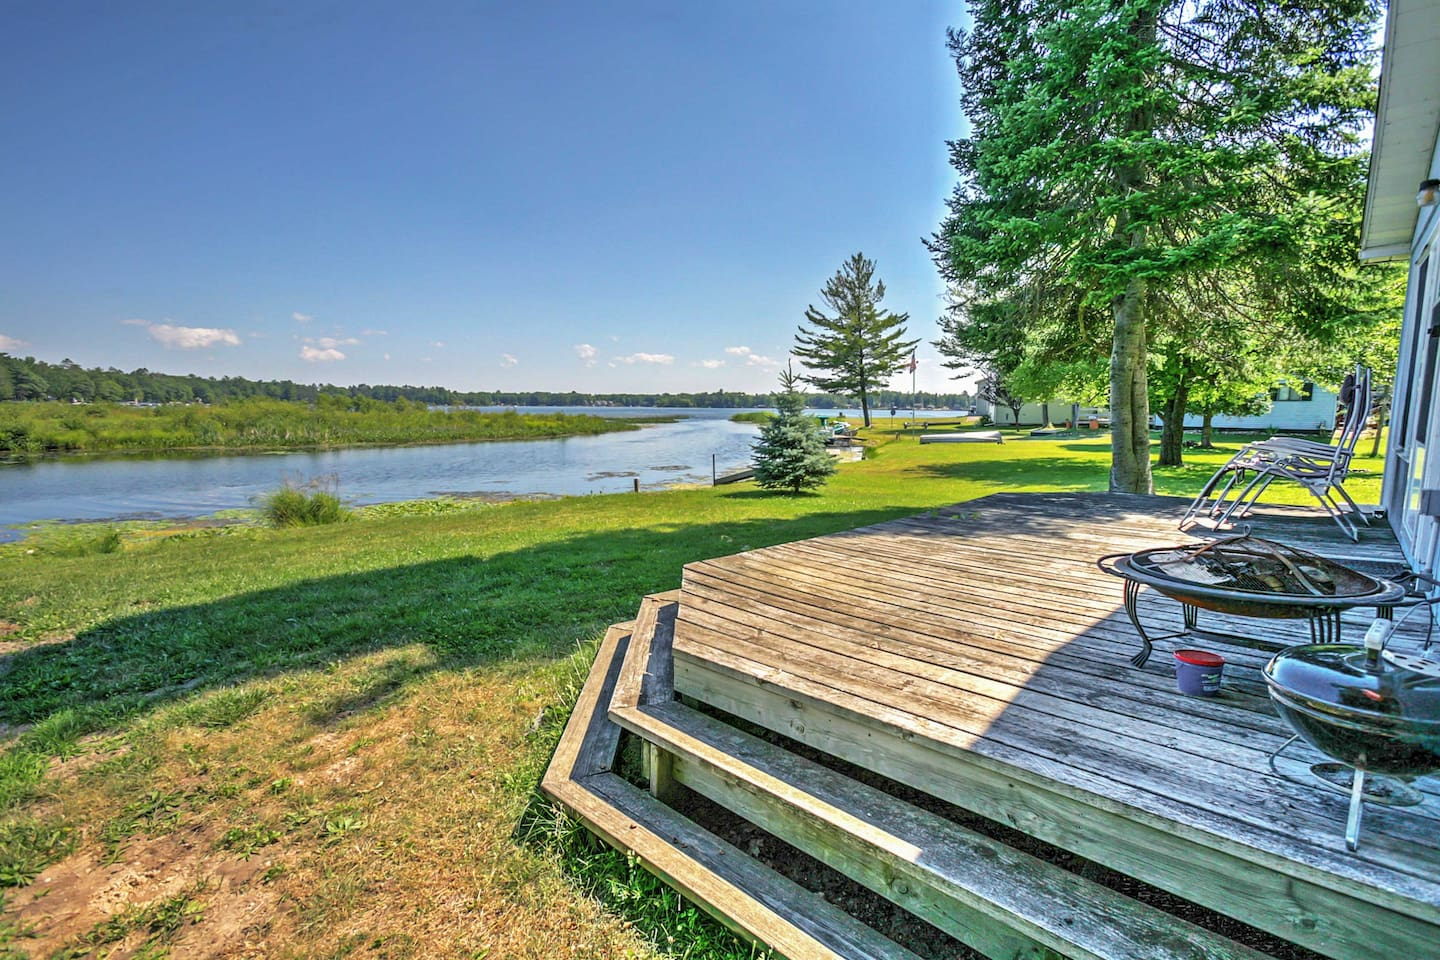 These lake views will take your breath away!